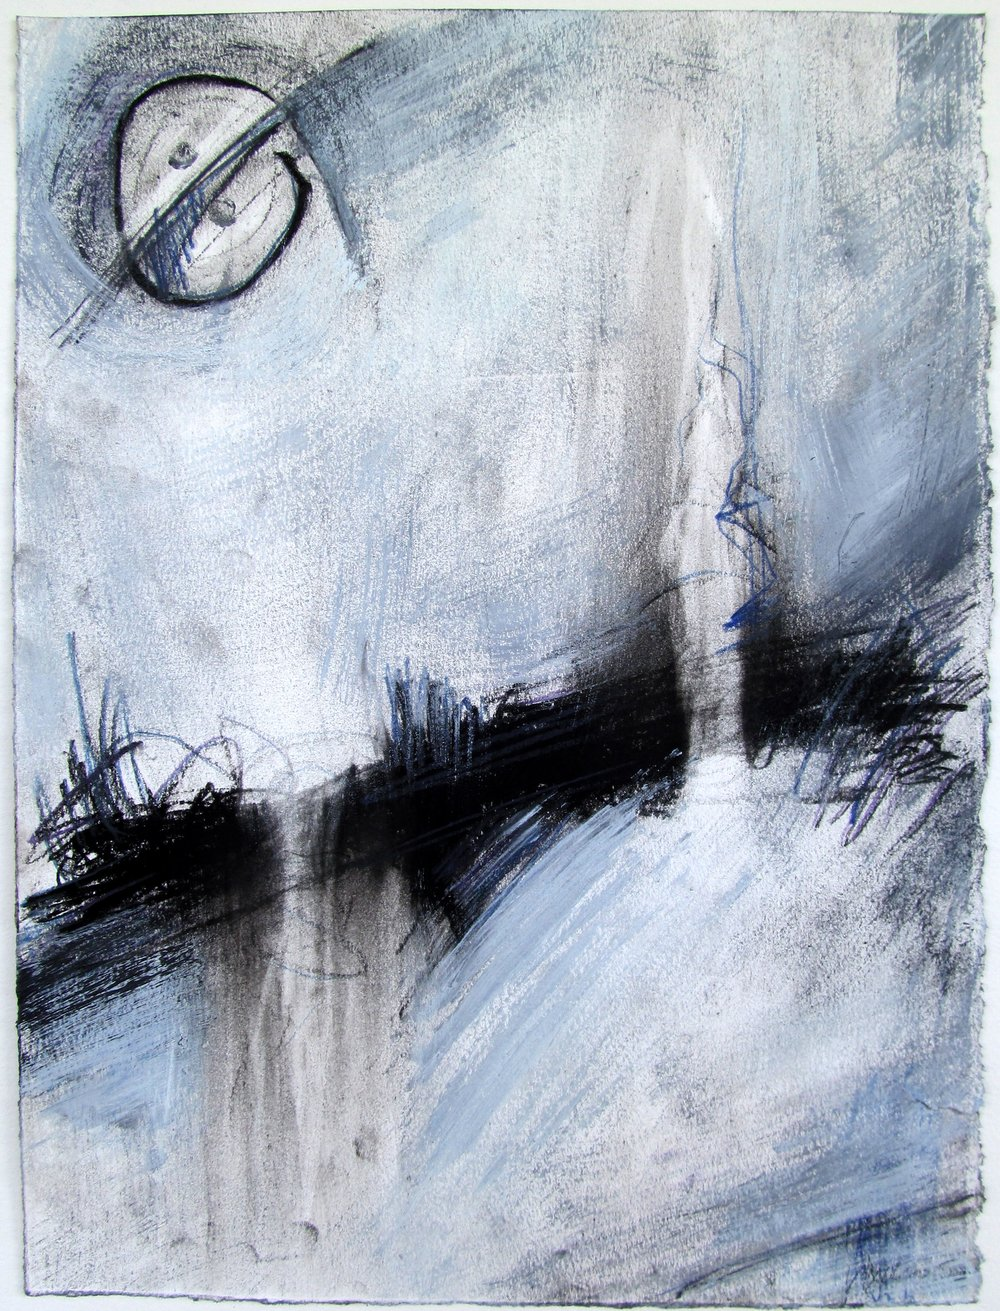 Rhythmic Balanced Interchange V   ~ Charcoal, acrylic, prismacolor on paper ~ 15x11in ~ 2013